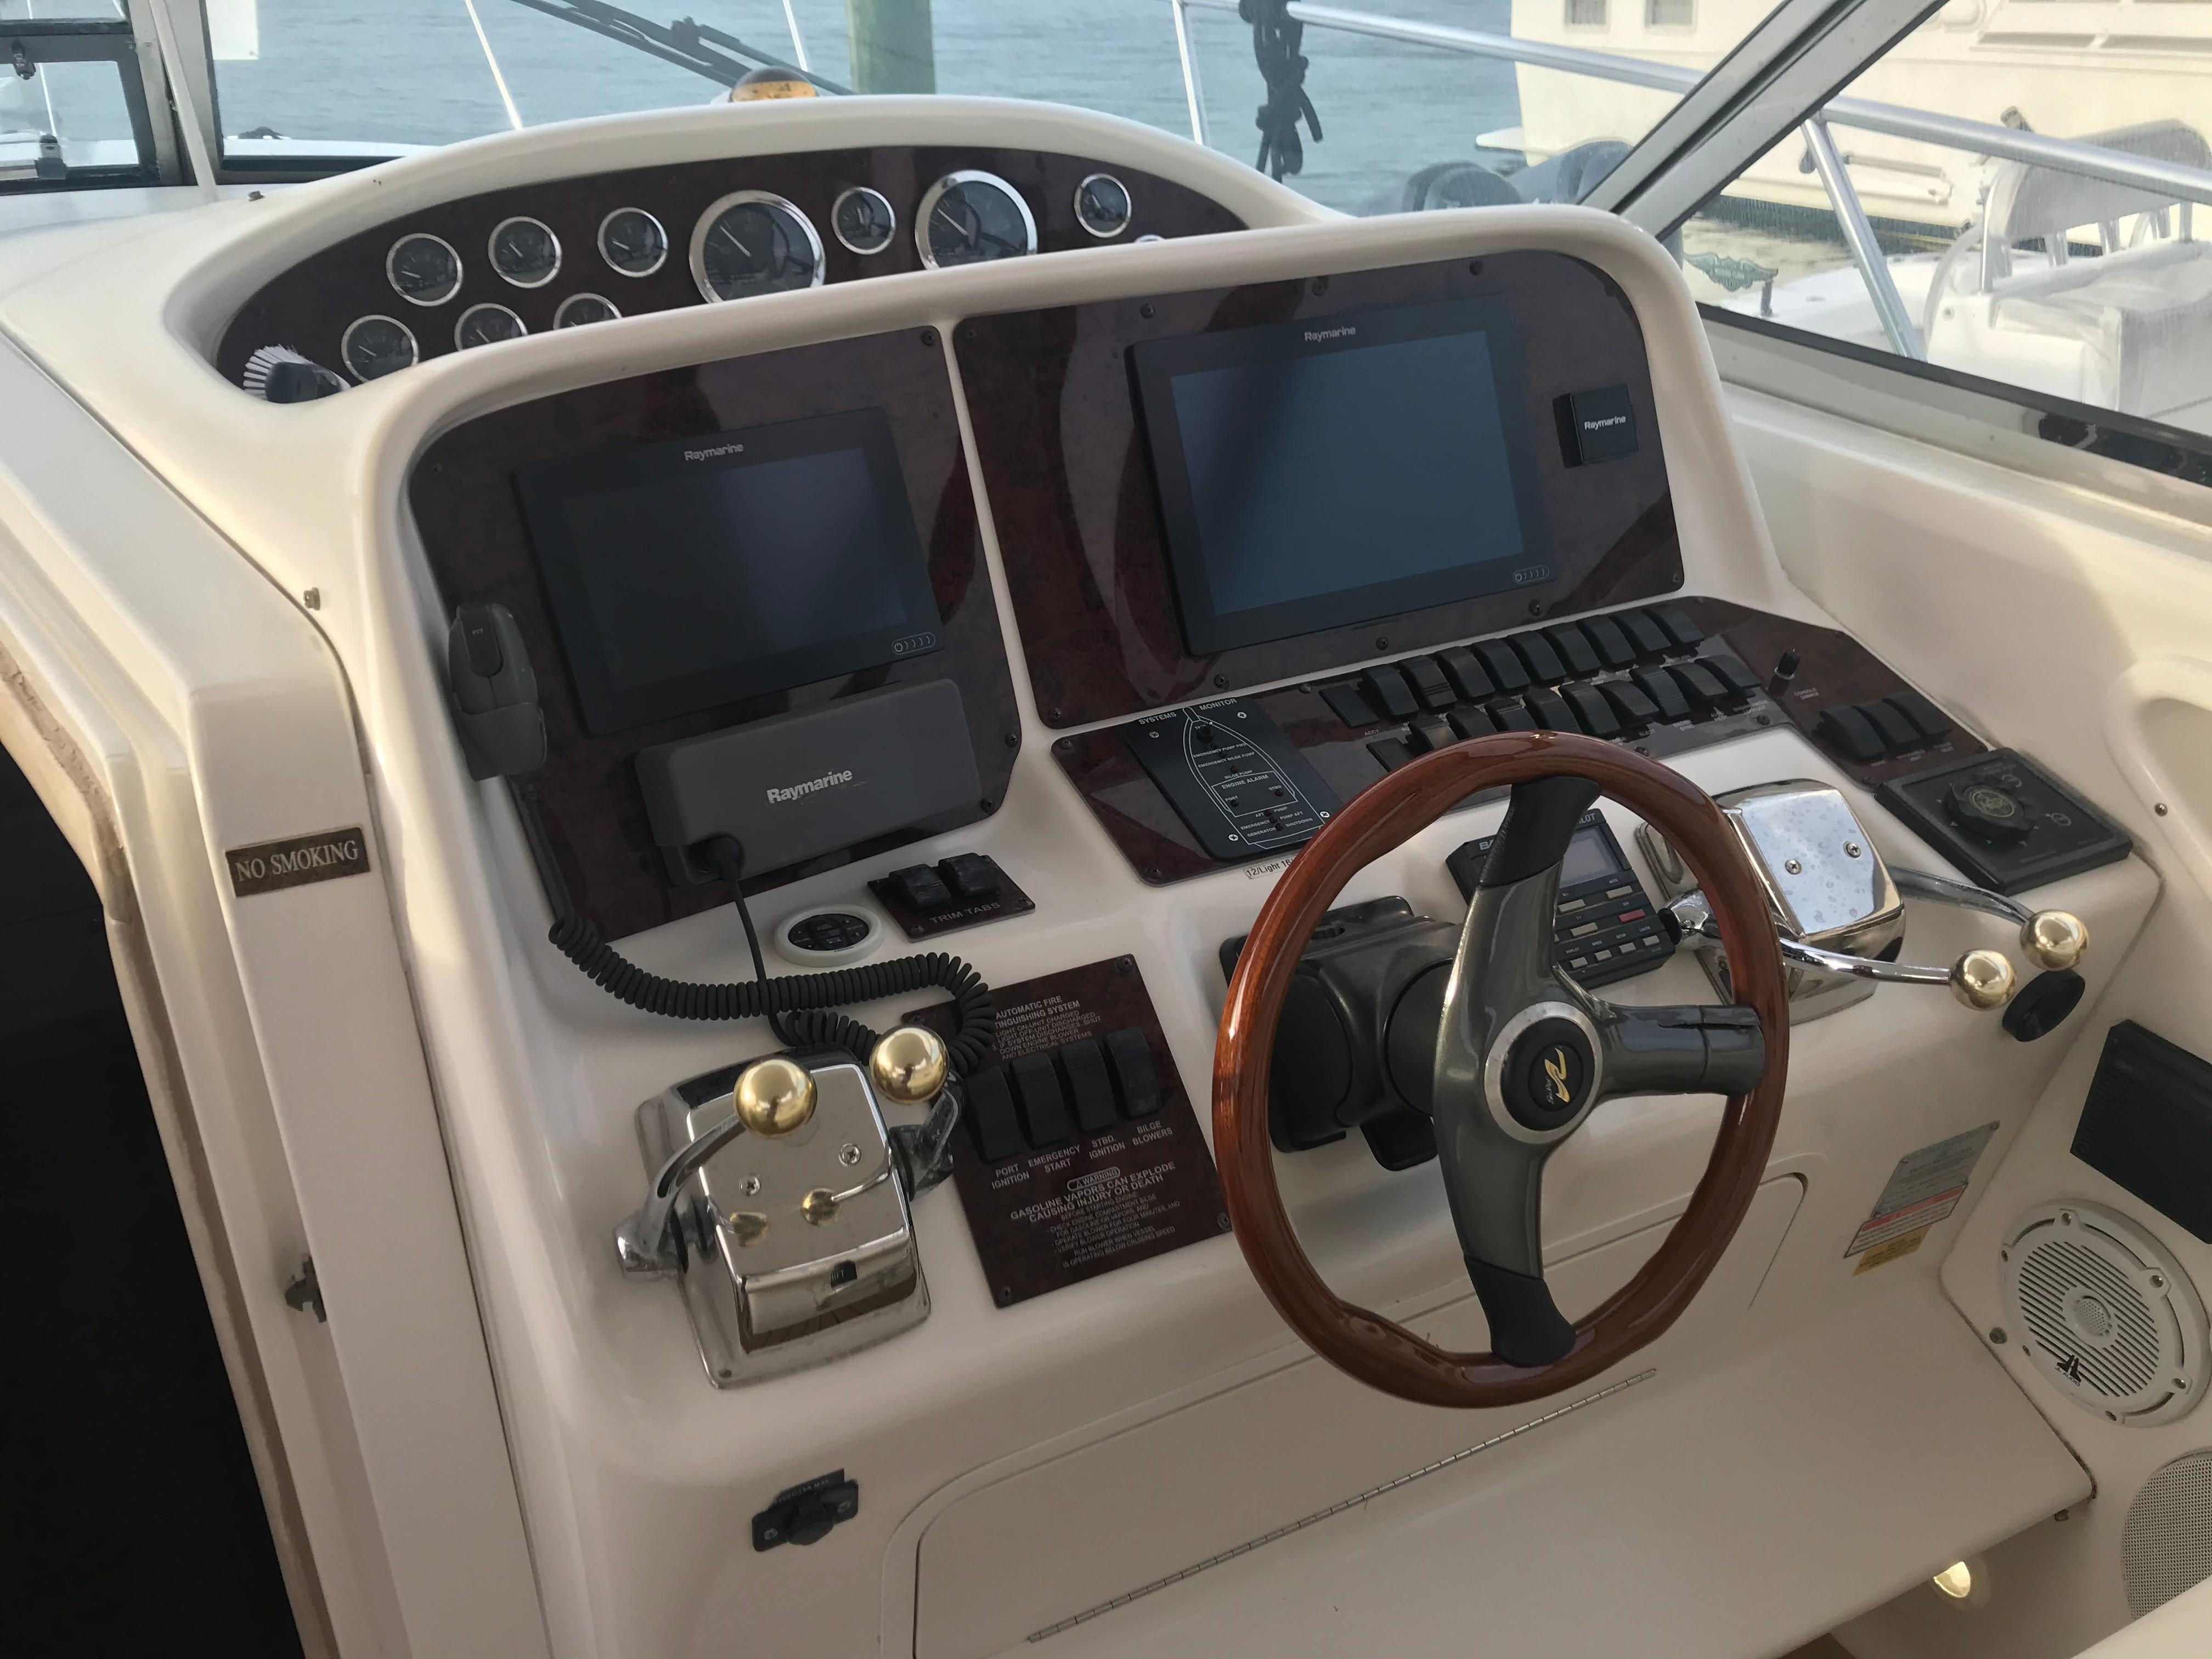 Sea Ray 370 Express Cruiser - Helm station